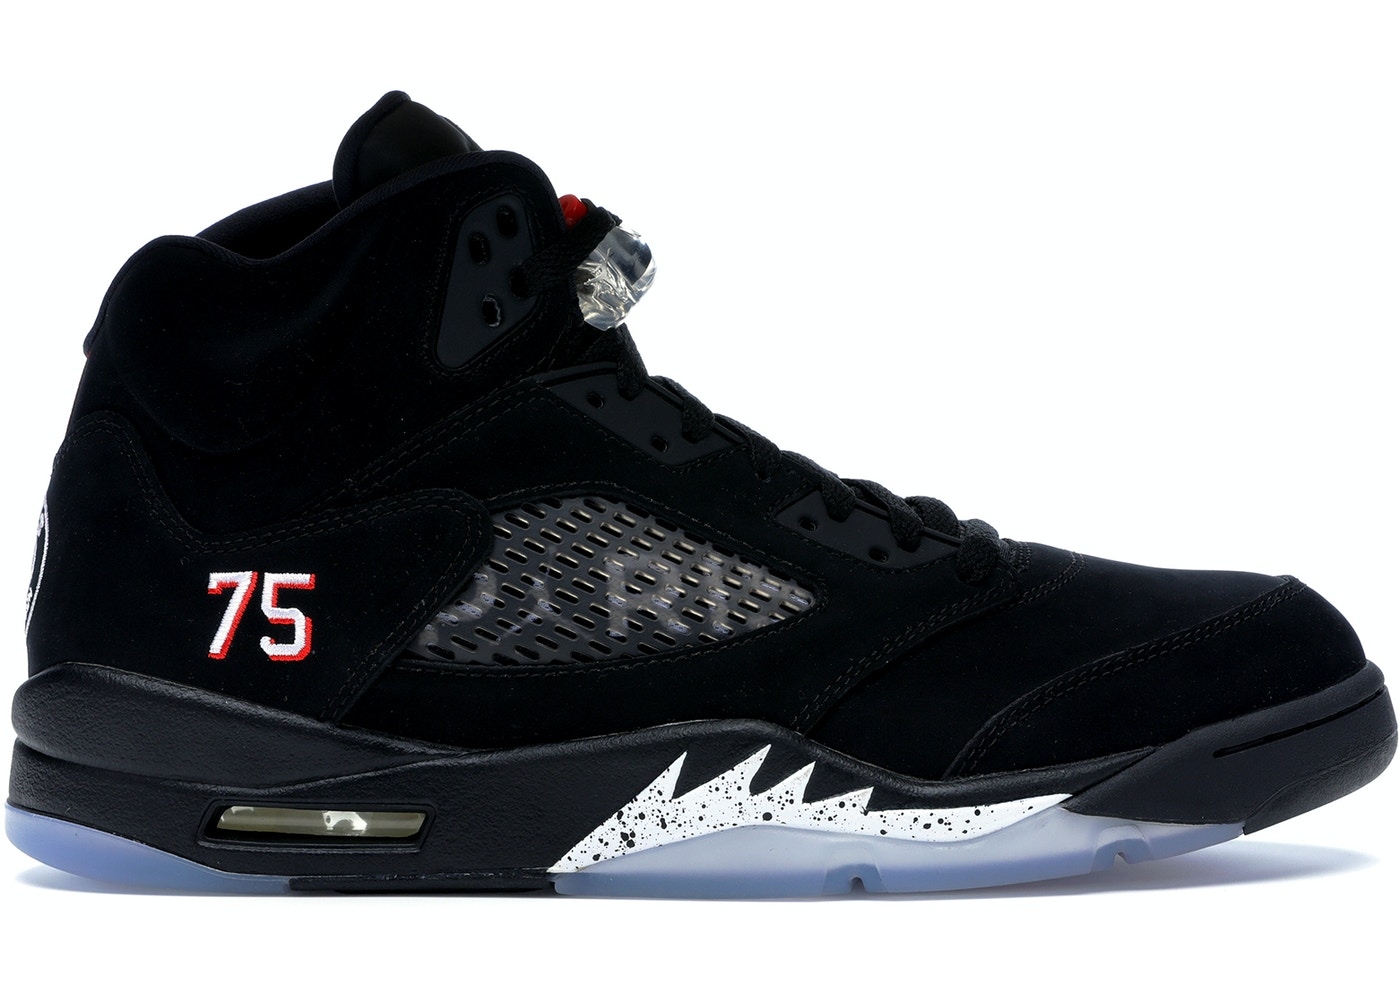 fa3e798b Jordan 5 Retro Paris Saint-Germain - AV9175-001